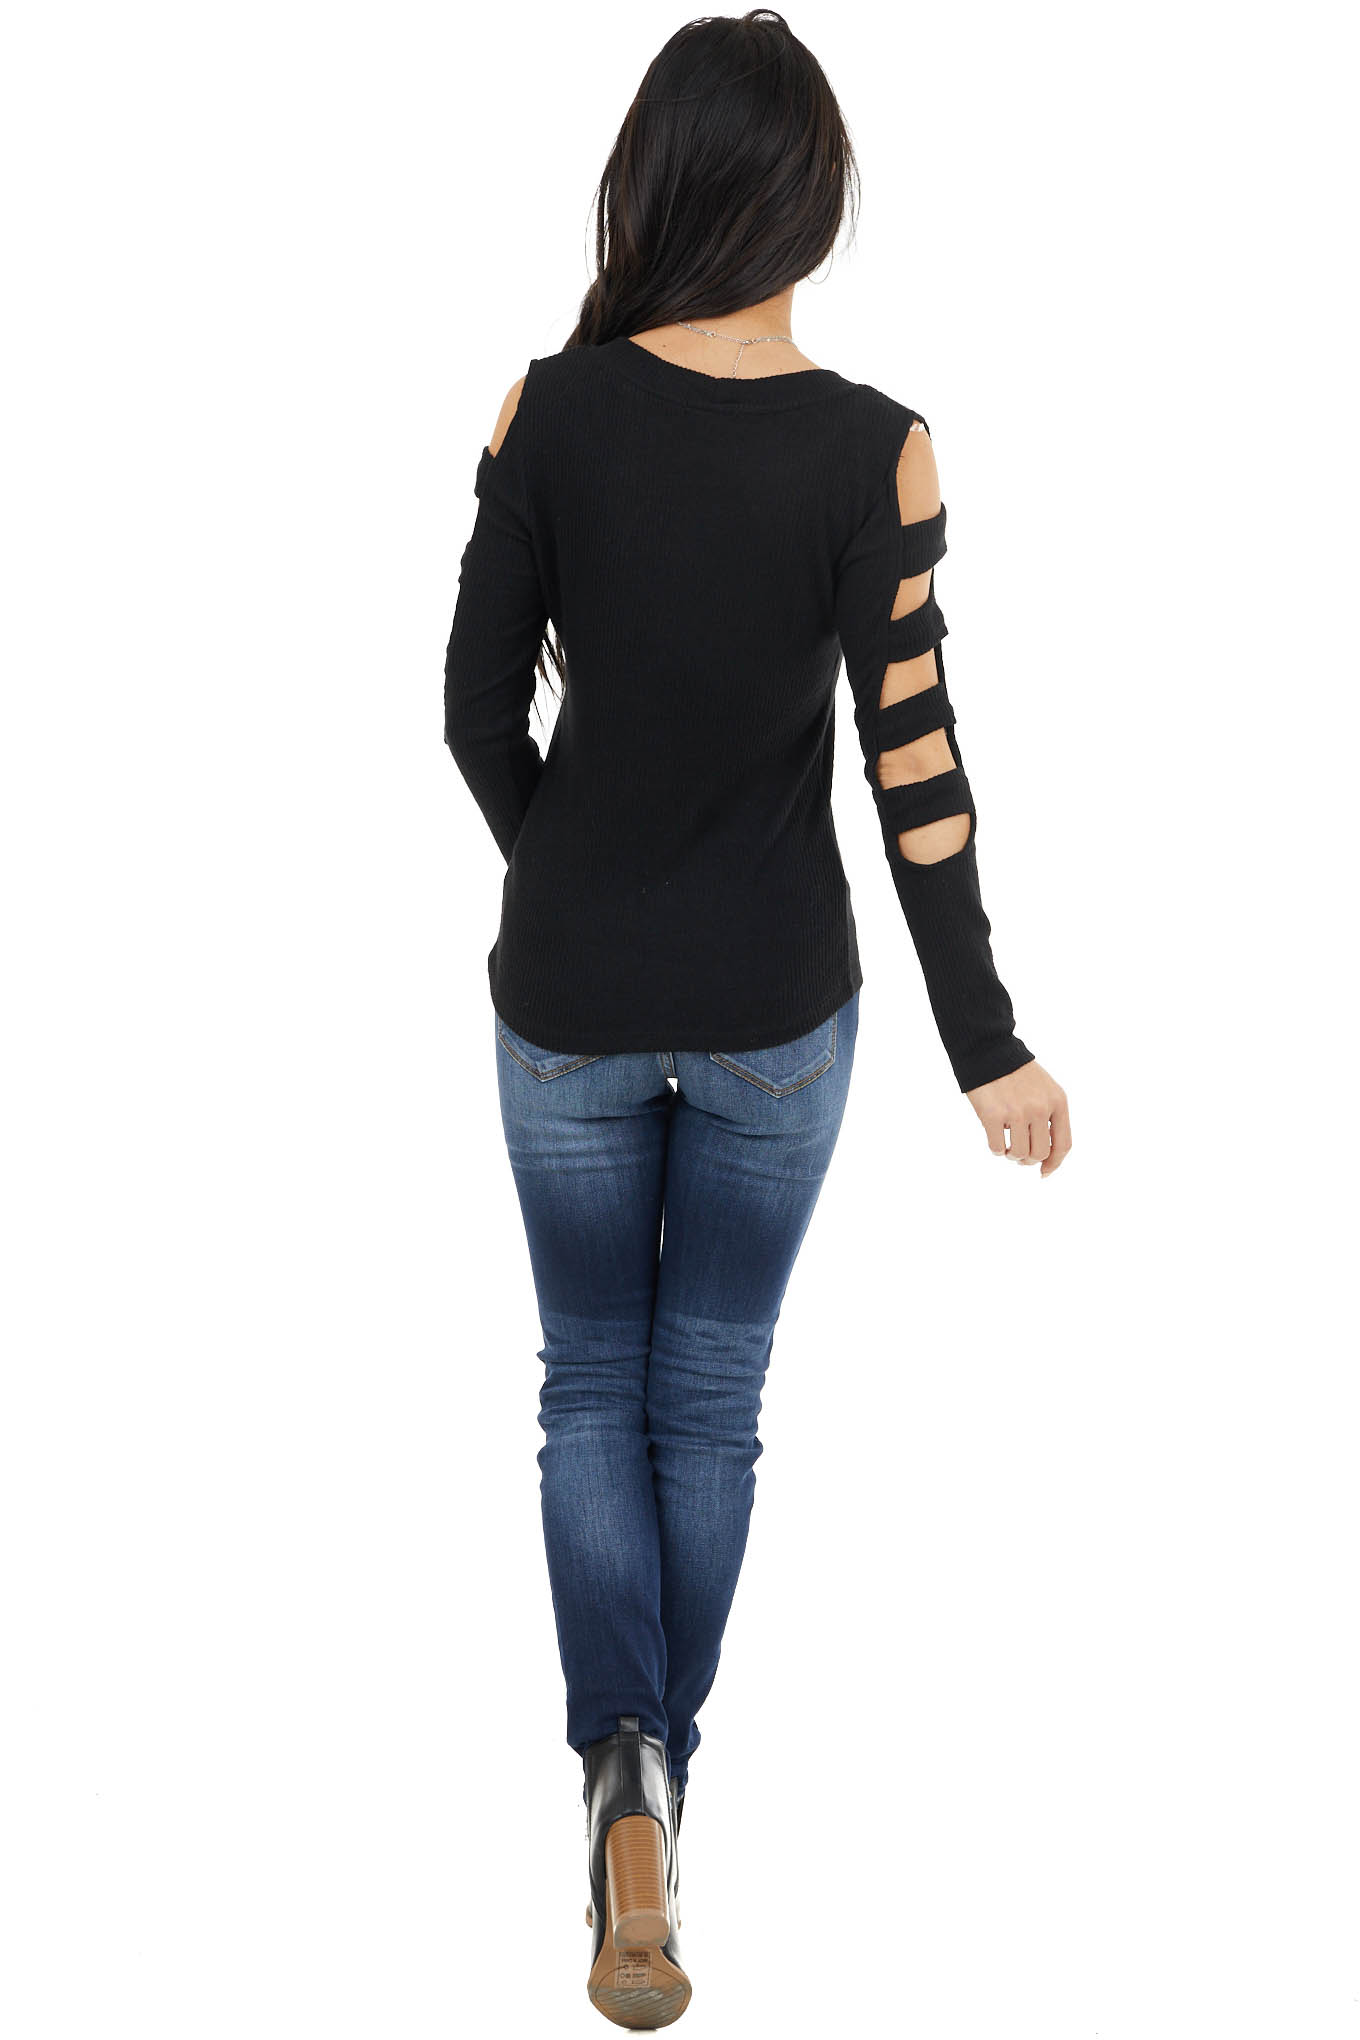 Black Ribbed Knit Fitted Top with Sleeve Cutout Details